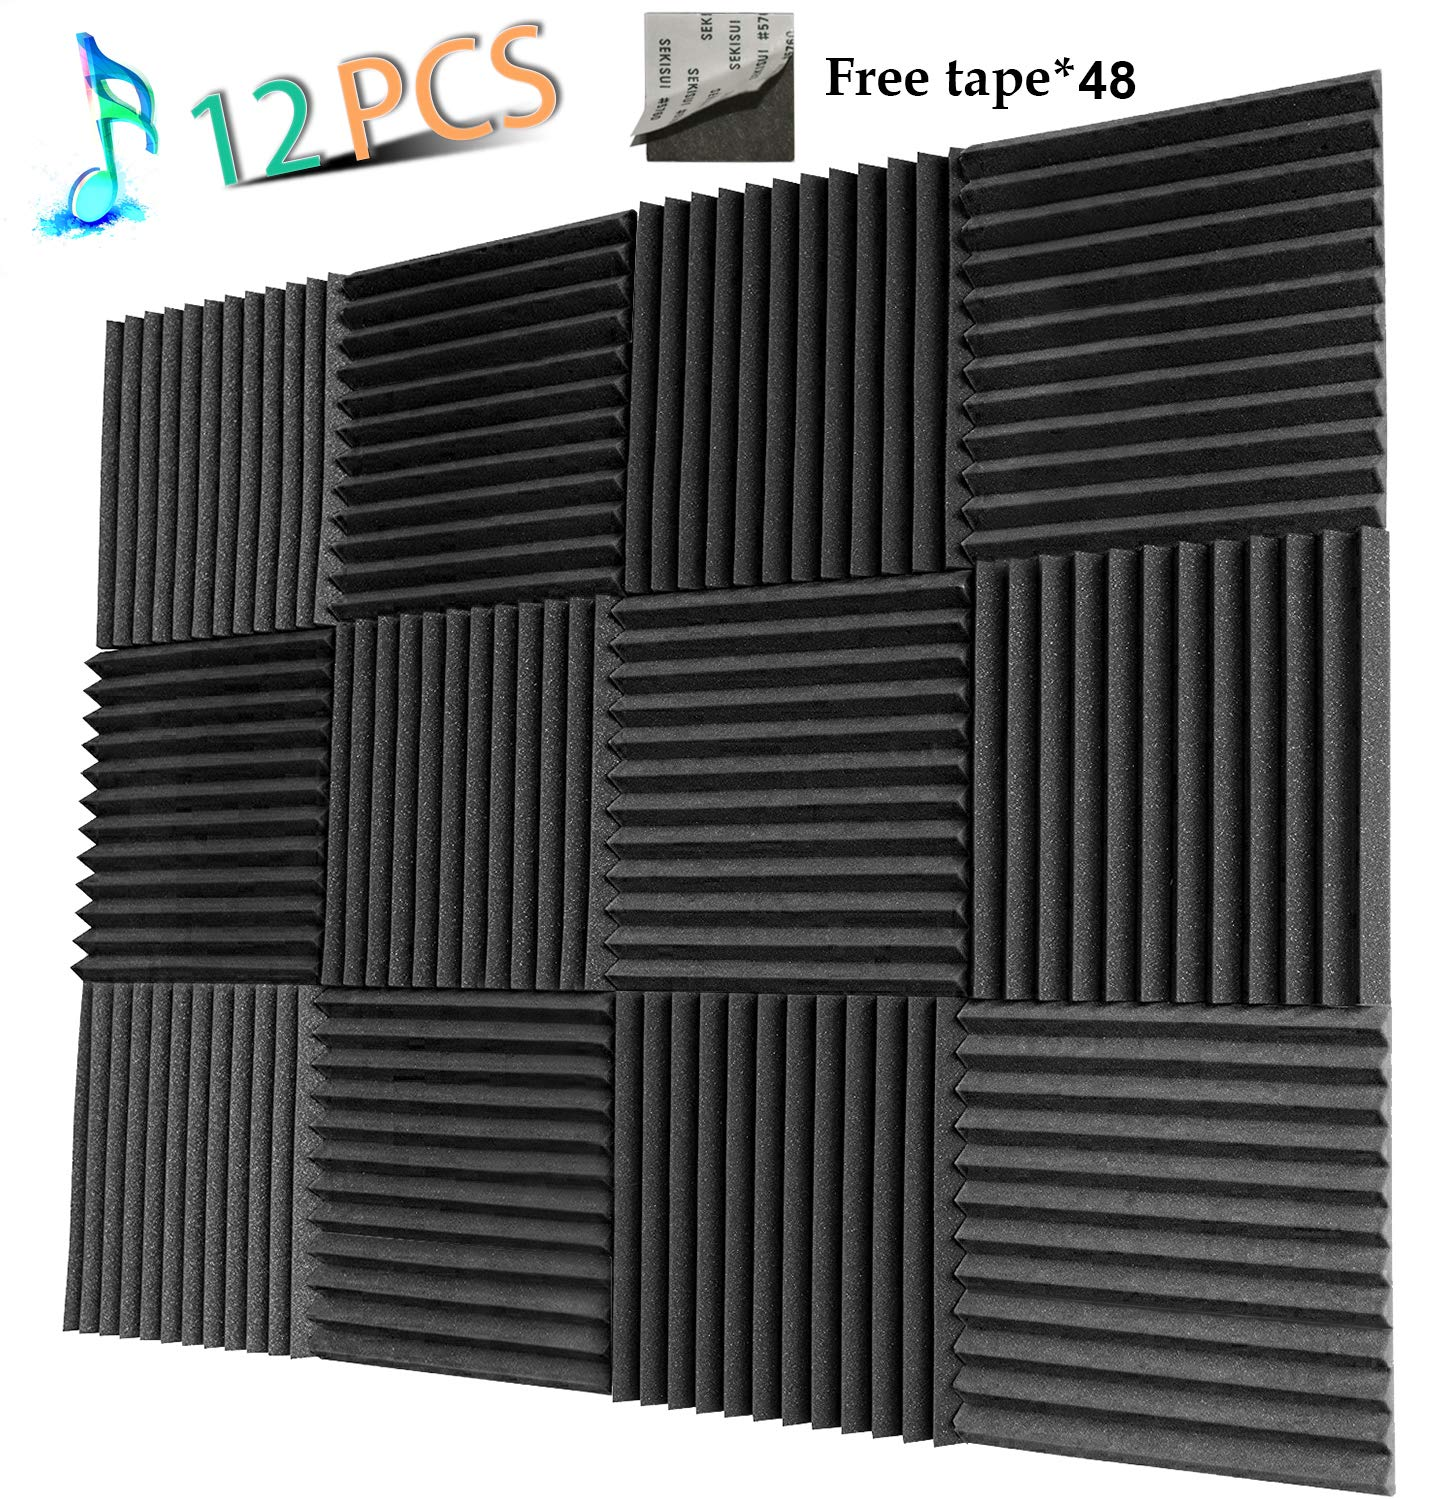 YWSHUF Acoustic Panels Studio Foam Sound Proof Panels Nosie Dampening Foam Studio Music Equipment Acoustical Treatments Foam 12 Pack-12''12''1'' YouWei